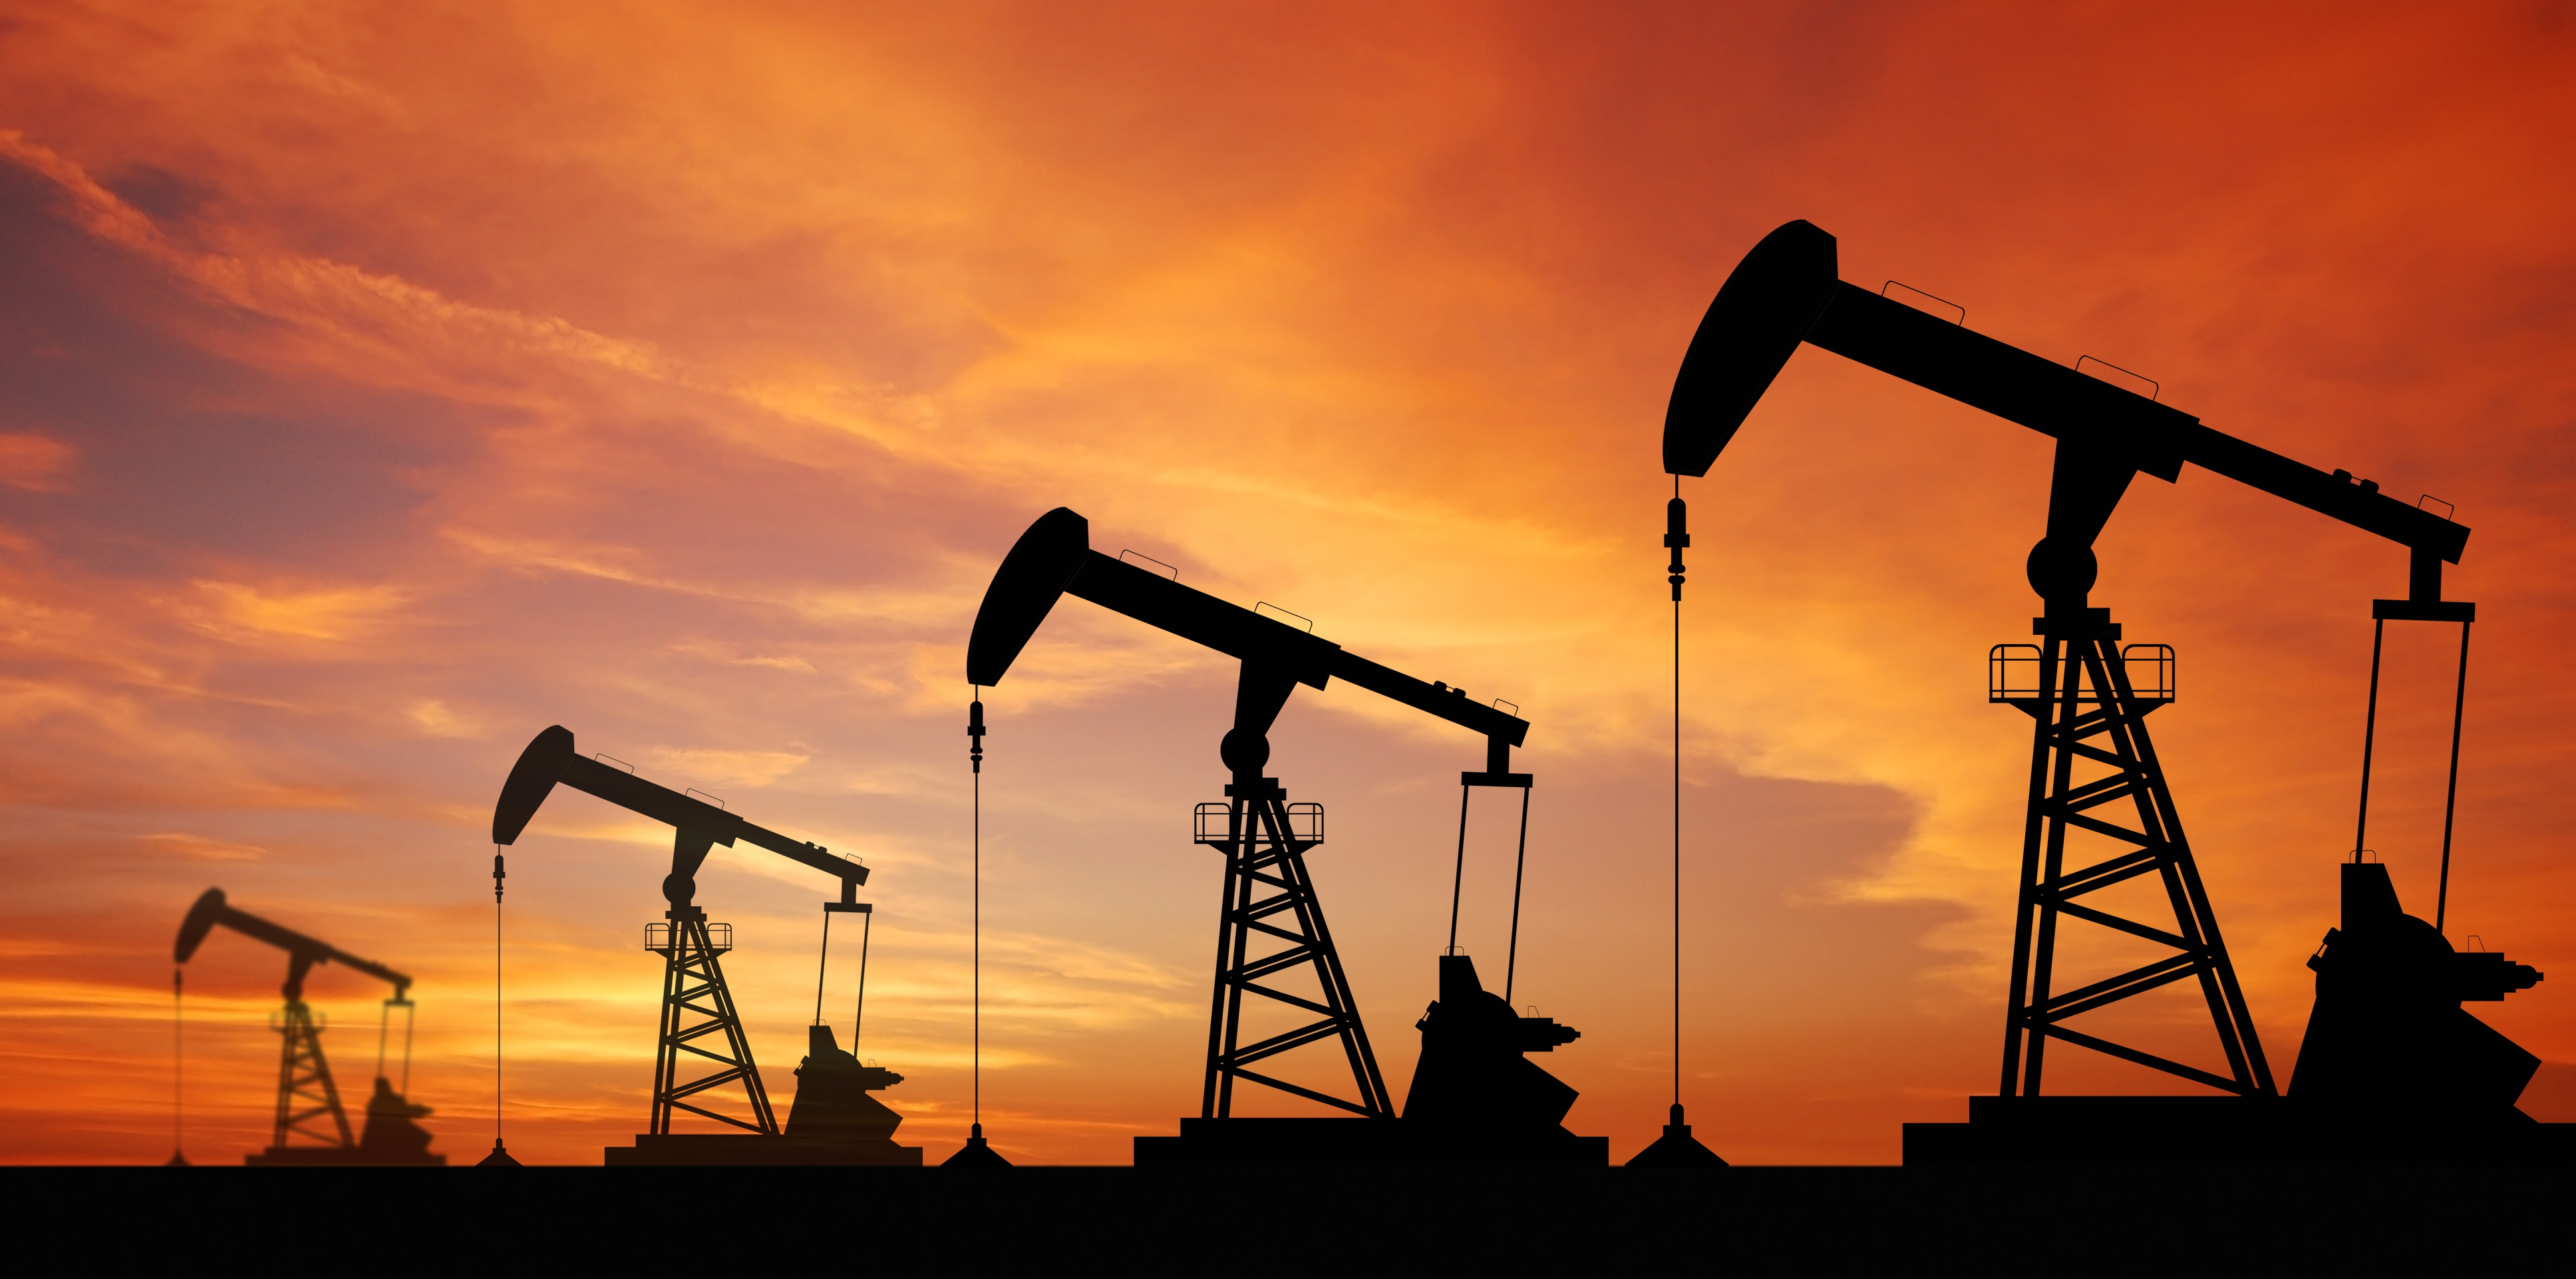 Oil and gas equipment